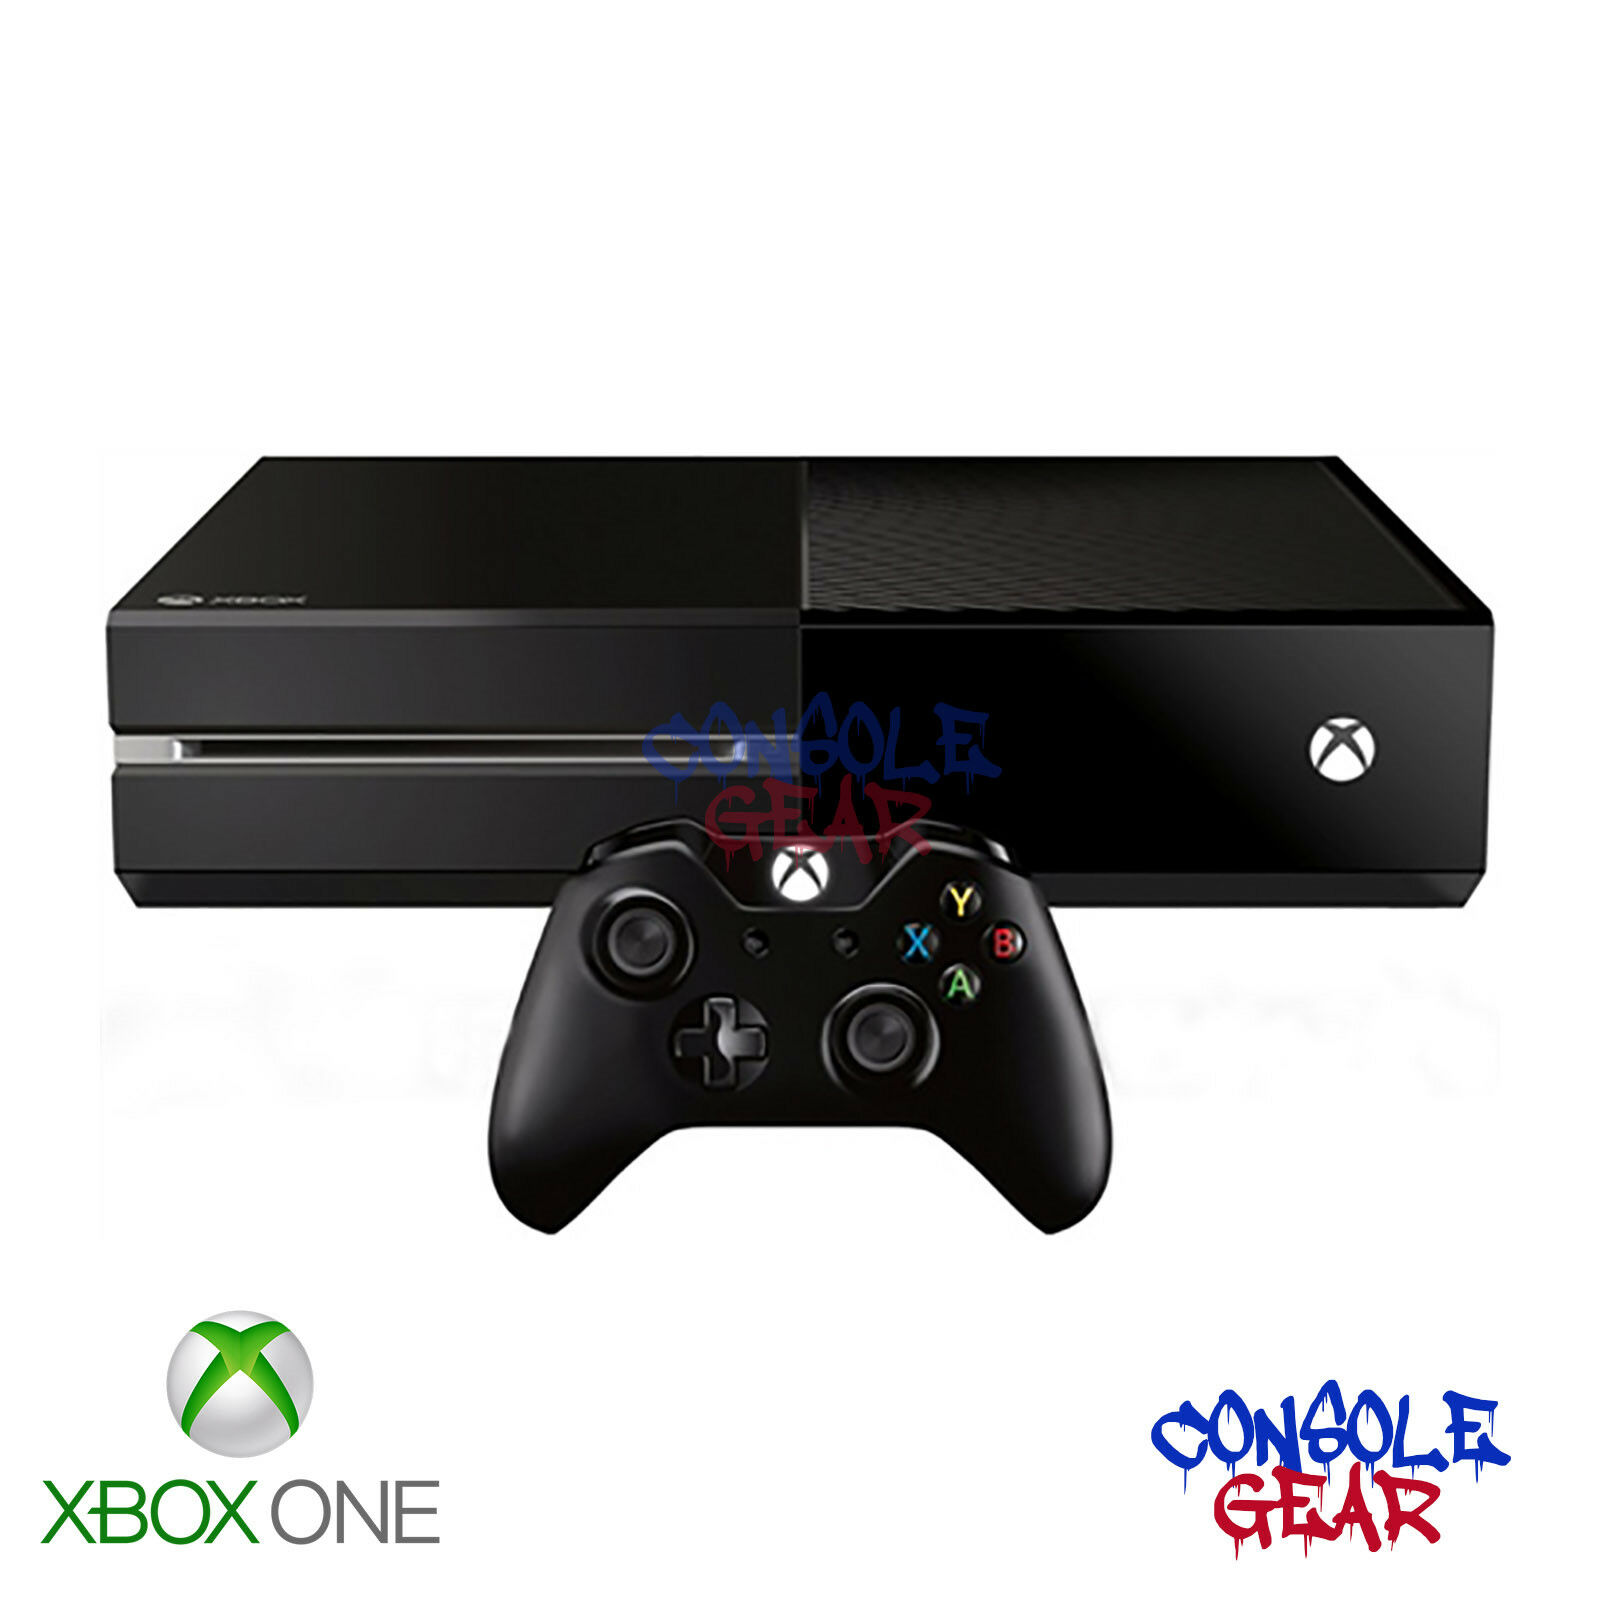 xbox one 500gb console complete setup eur 159 01. Black Bedroom Furniture Sets. Home Design Ideas